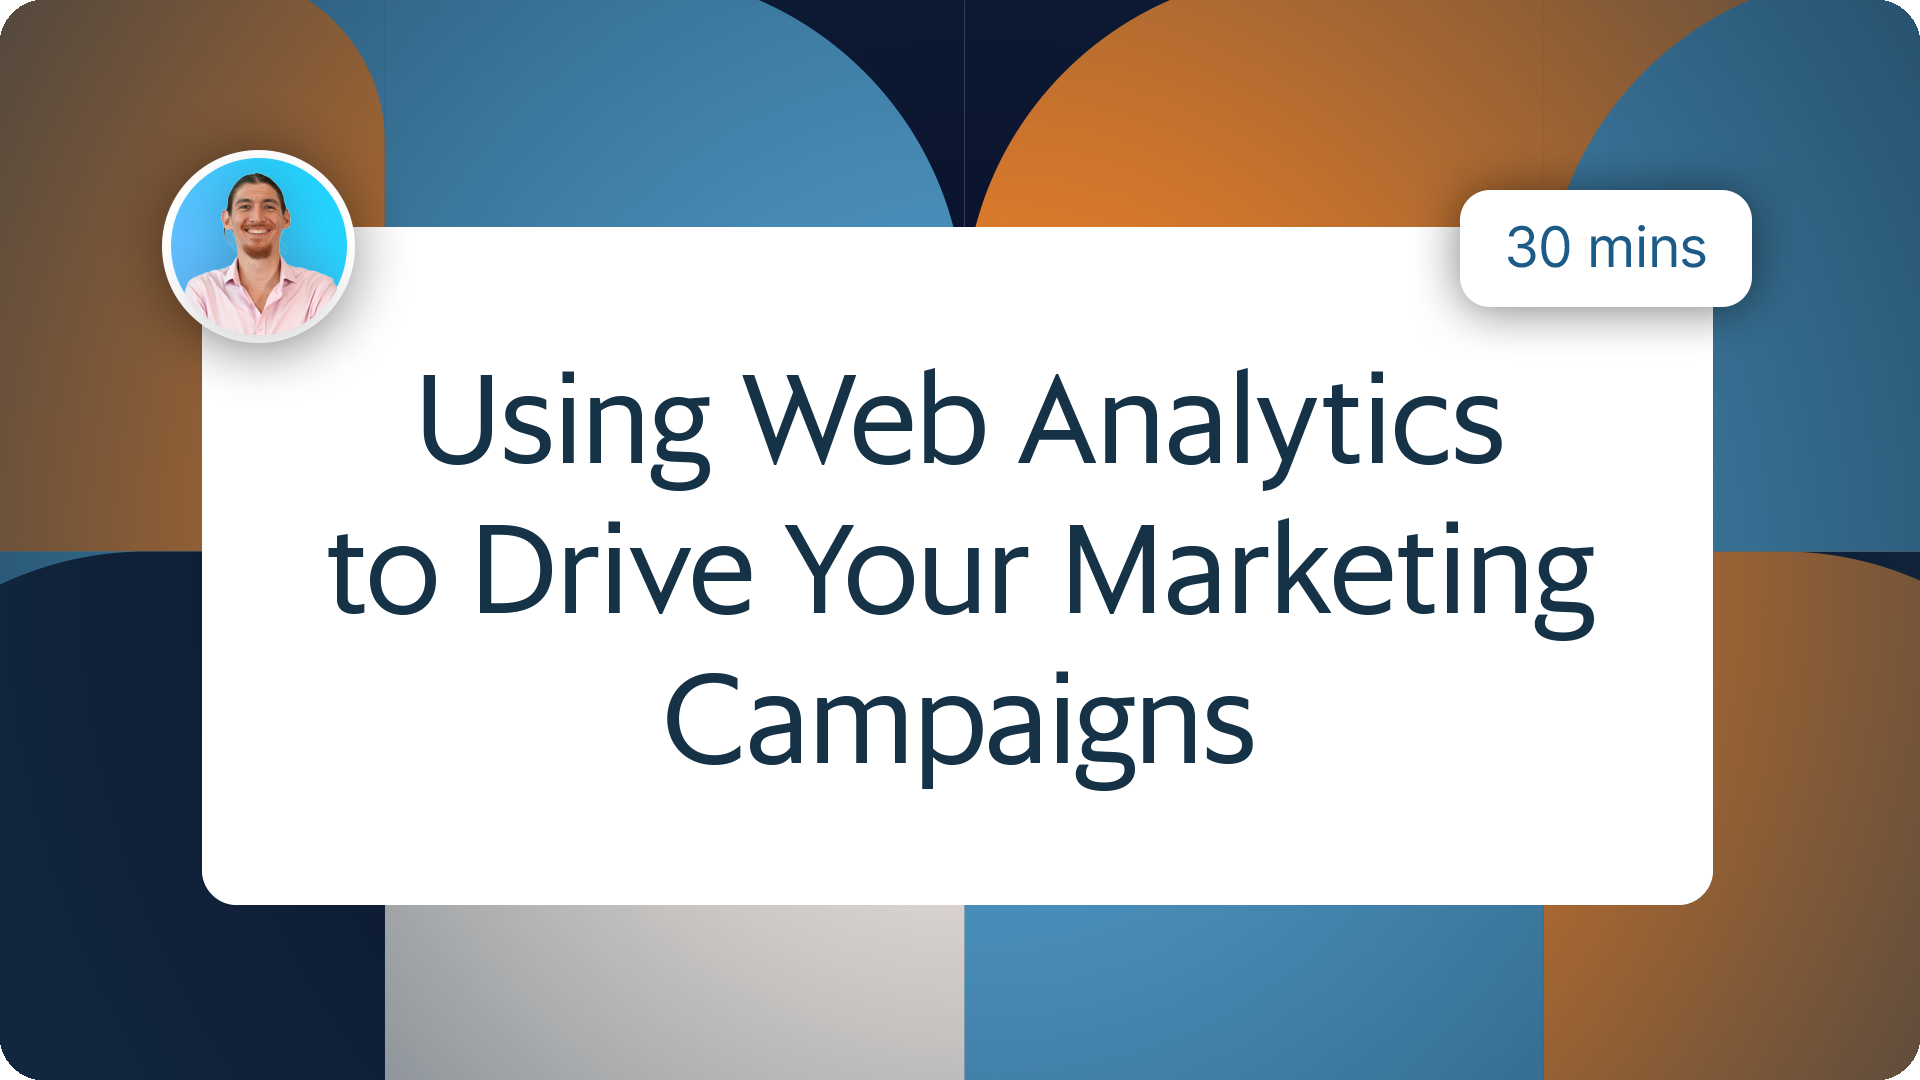 Using Web Analytics to Drive Your Marketing Campaigns